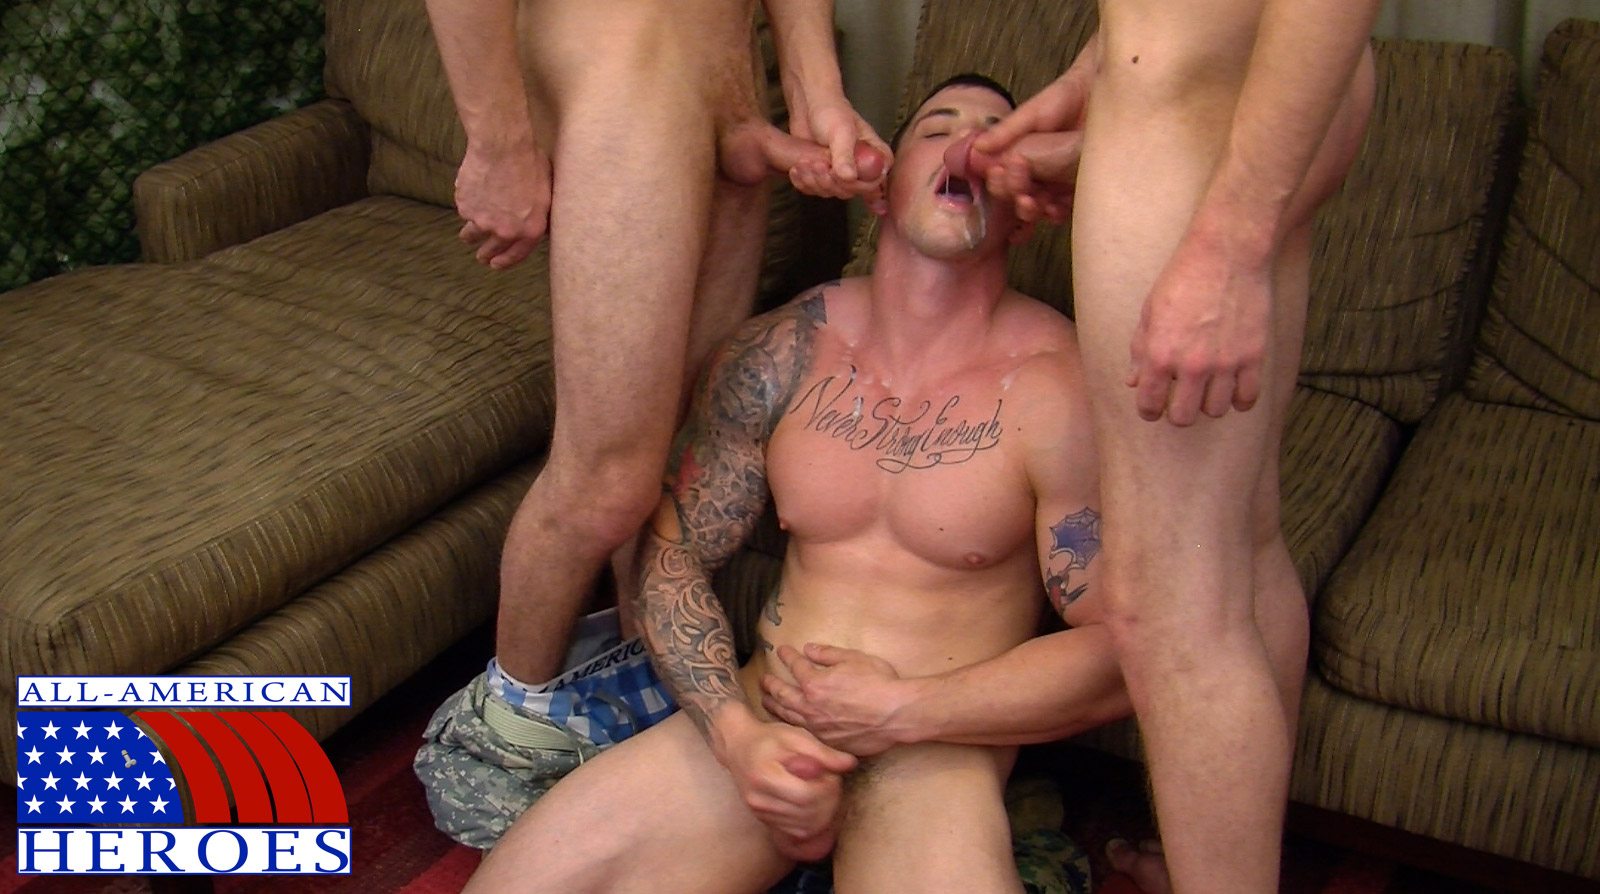 All American Heroes Sergeant Slate Triple fucking big cocks Army guys Amateur Gay Porn 14 Two Real Army Privates Fuck Their Muscle Sergeant and Cum In His Mouth